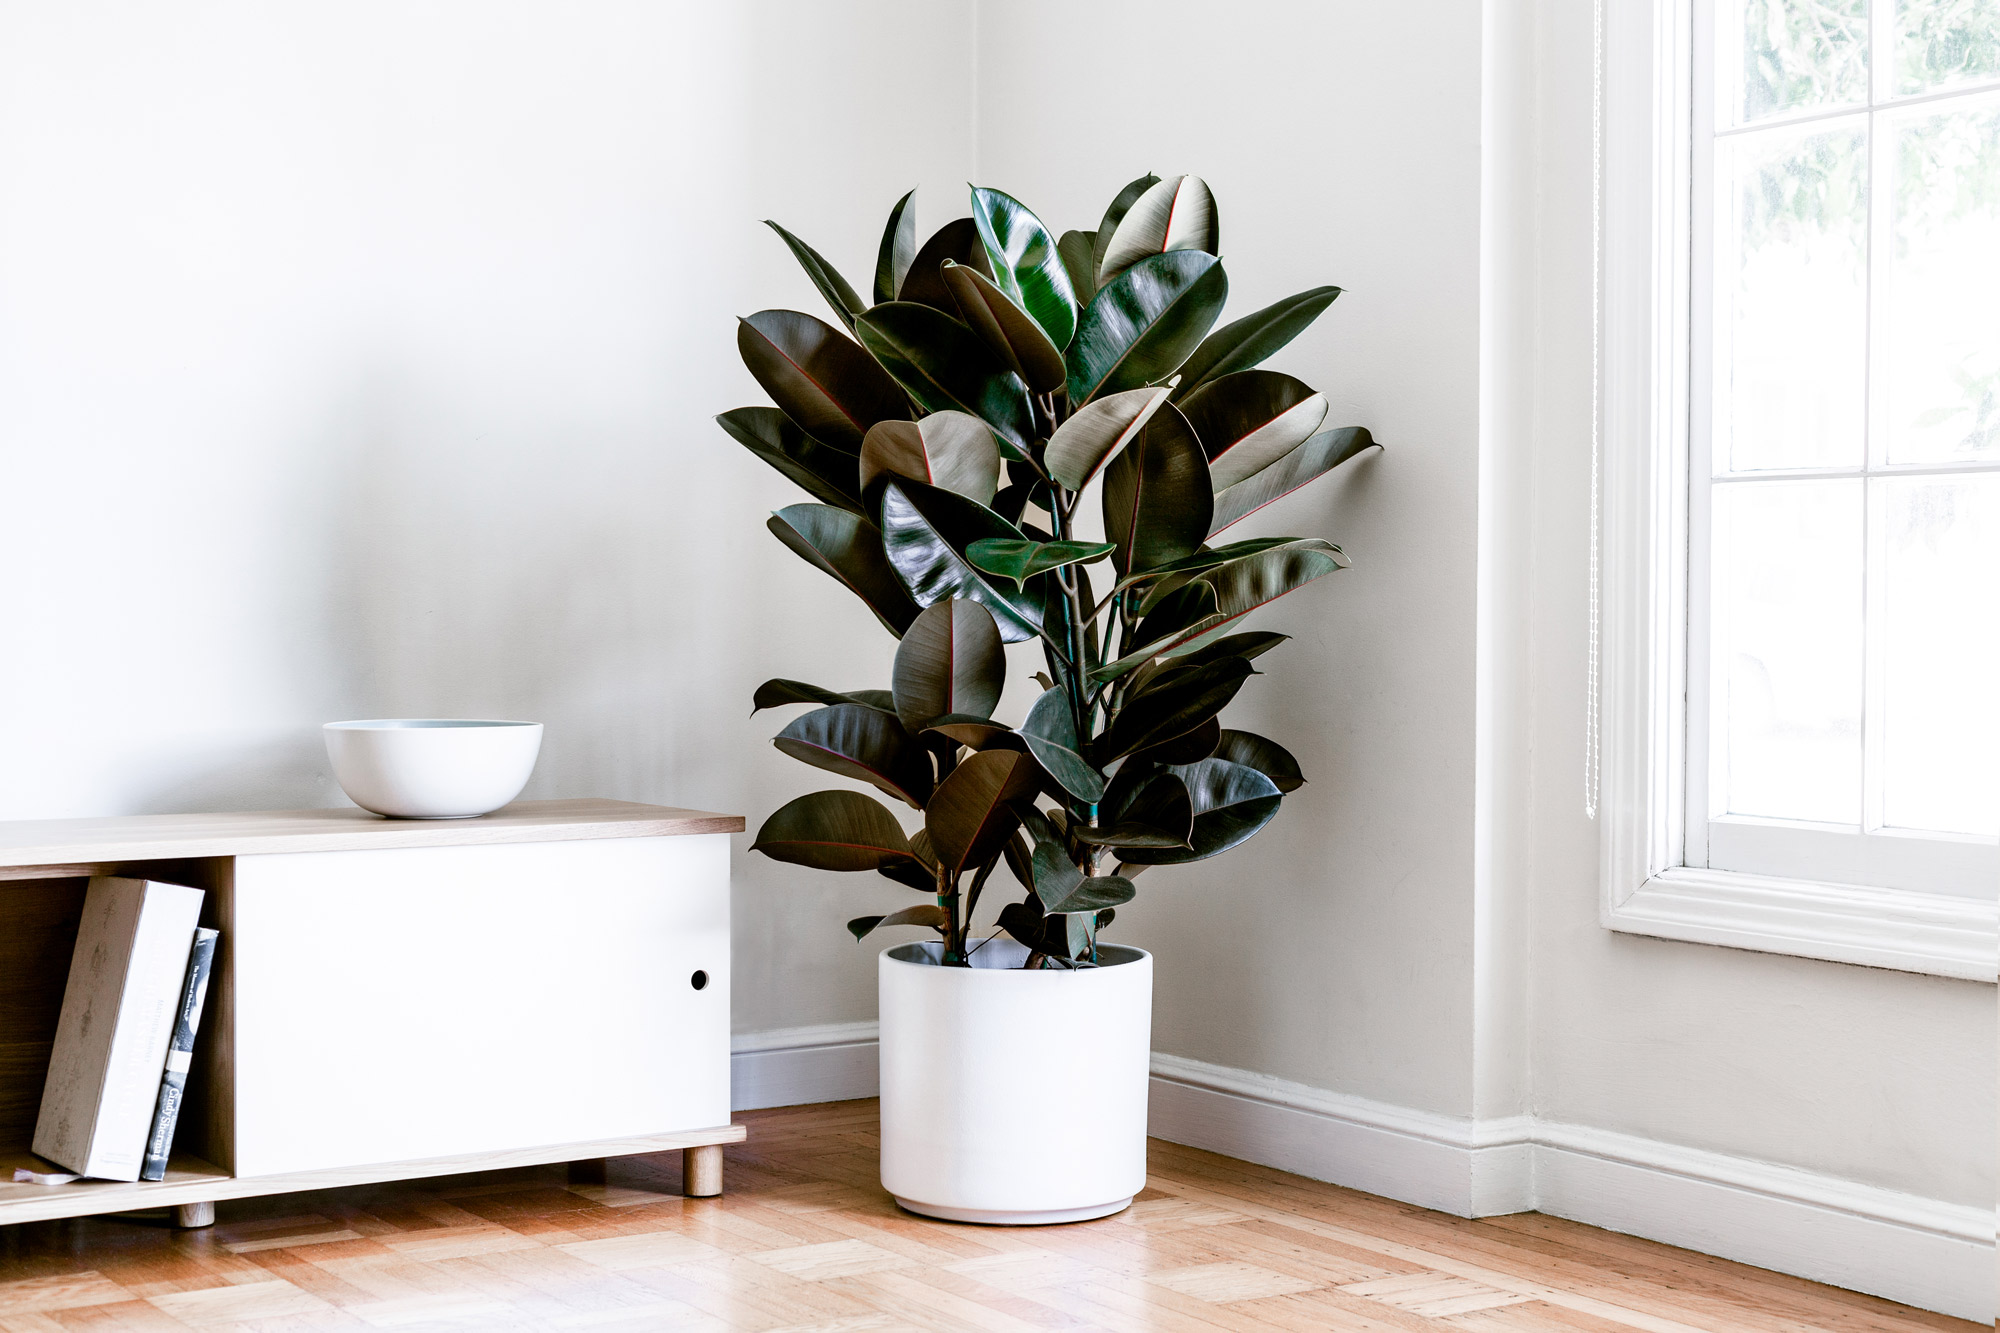 RUBBER TREE - A unique indoor plant option with dark leaves and crimson colored casings. Easy care and air-purifying.